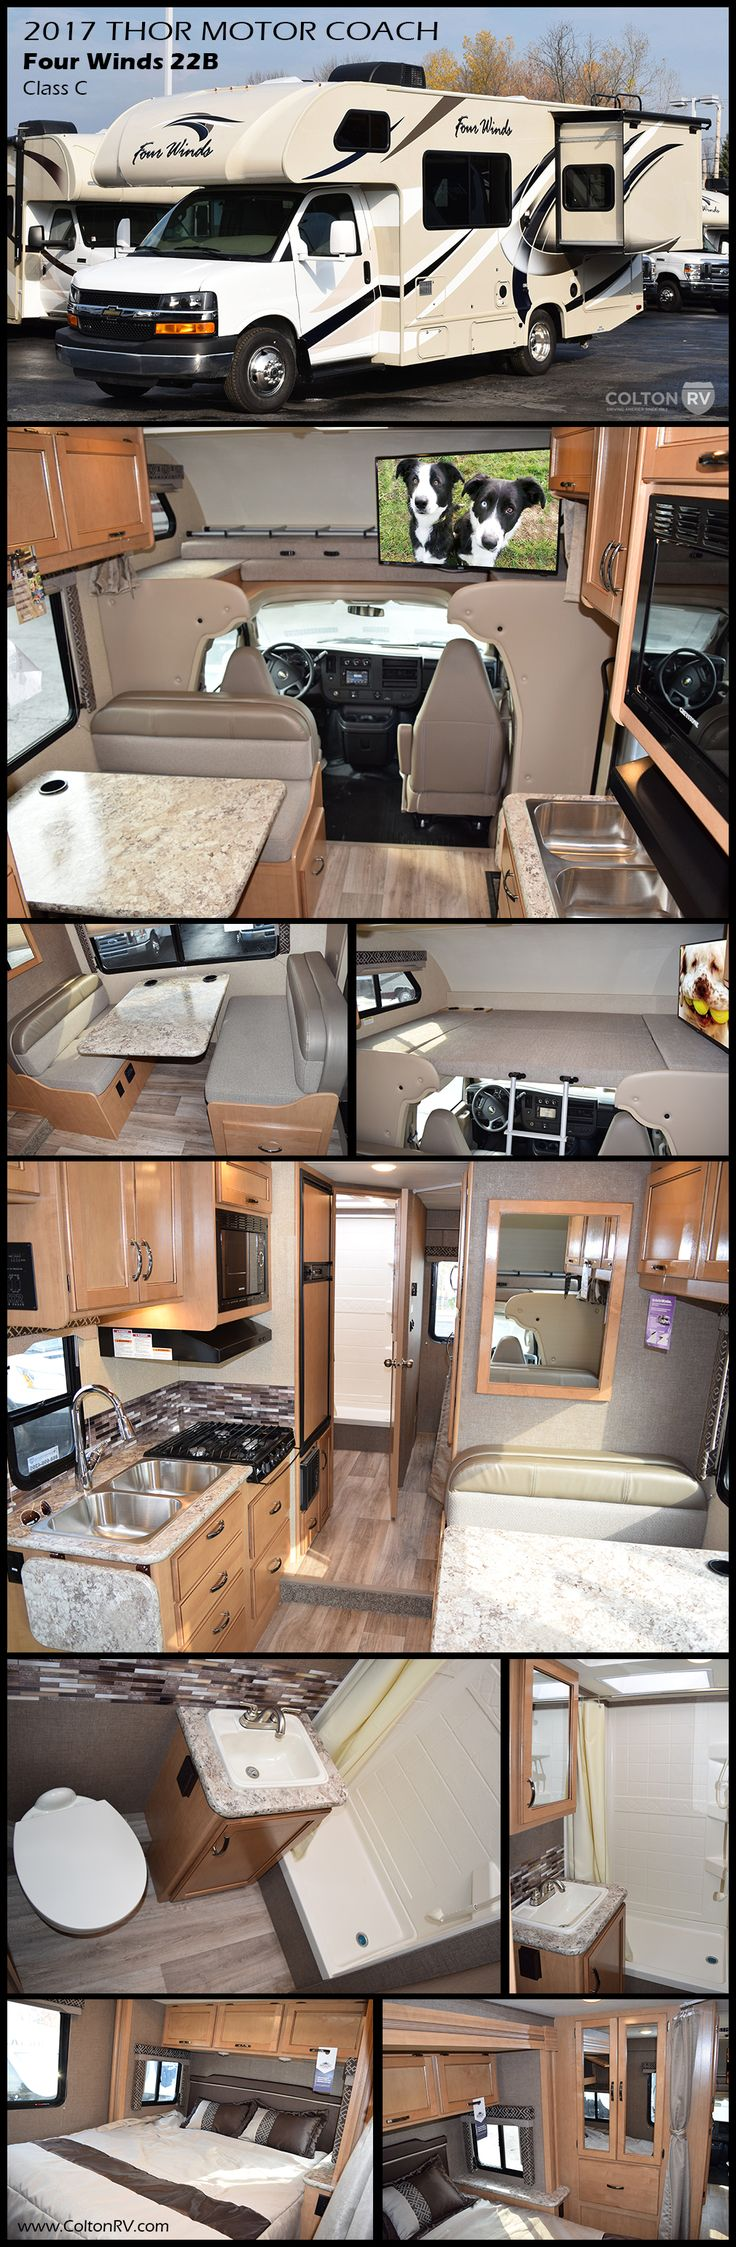 46 best class c motorhomes images on pinterest rv campers class